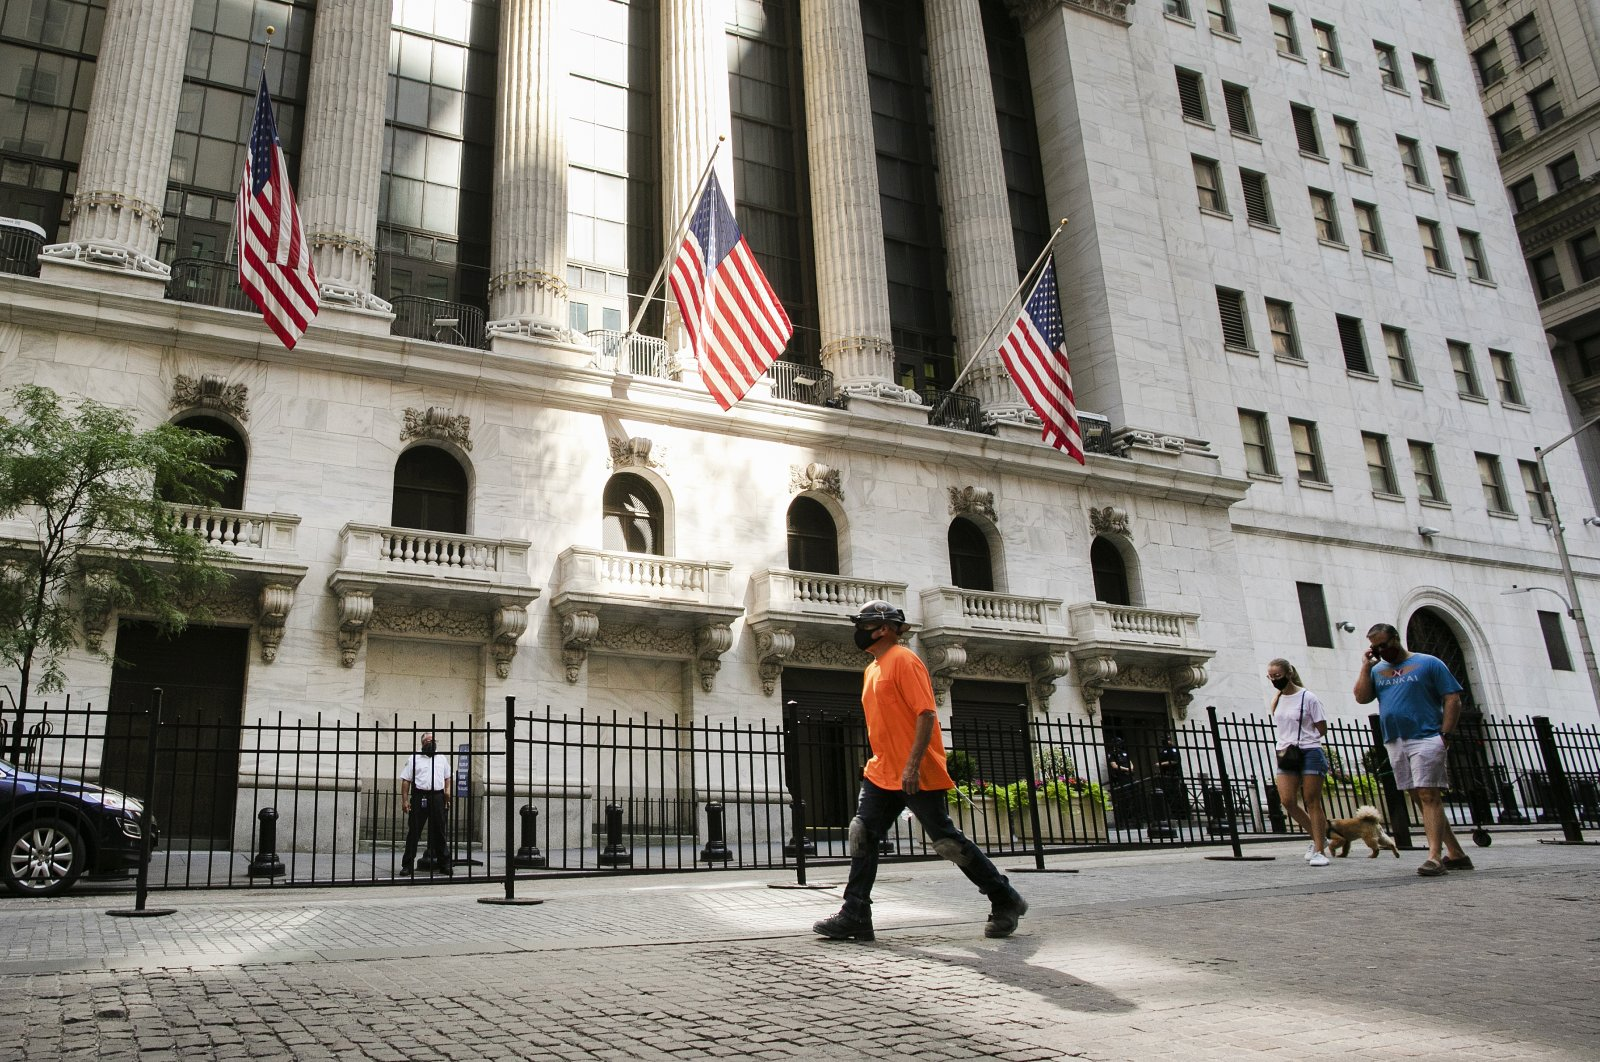 People walk by the New York Stock Exchange, New York City, U.S., July 21, 2020.